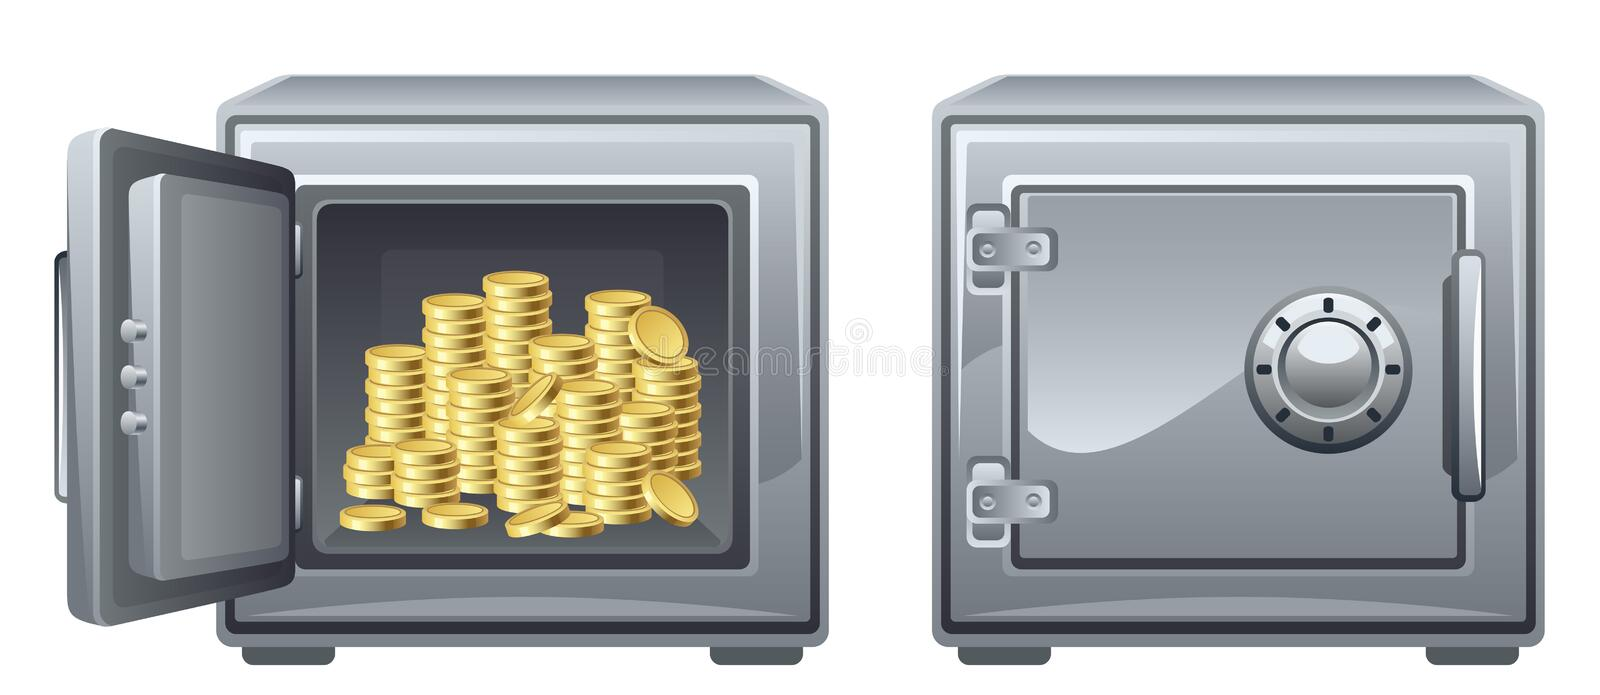 Safe. With money on a white background royalty free illustration